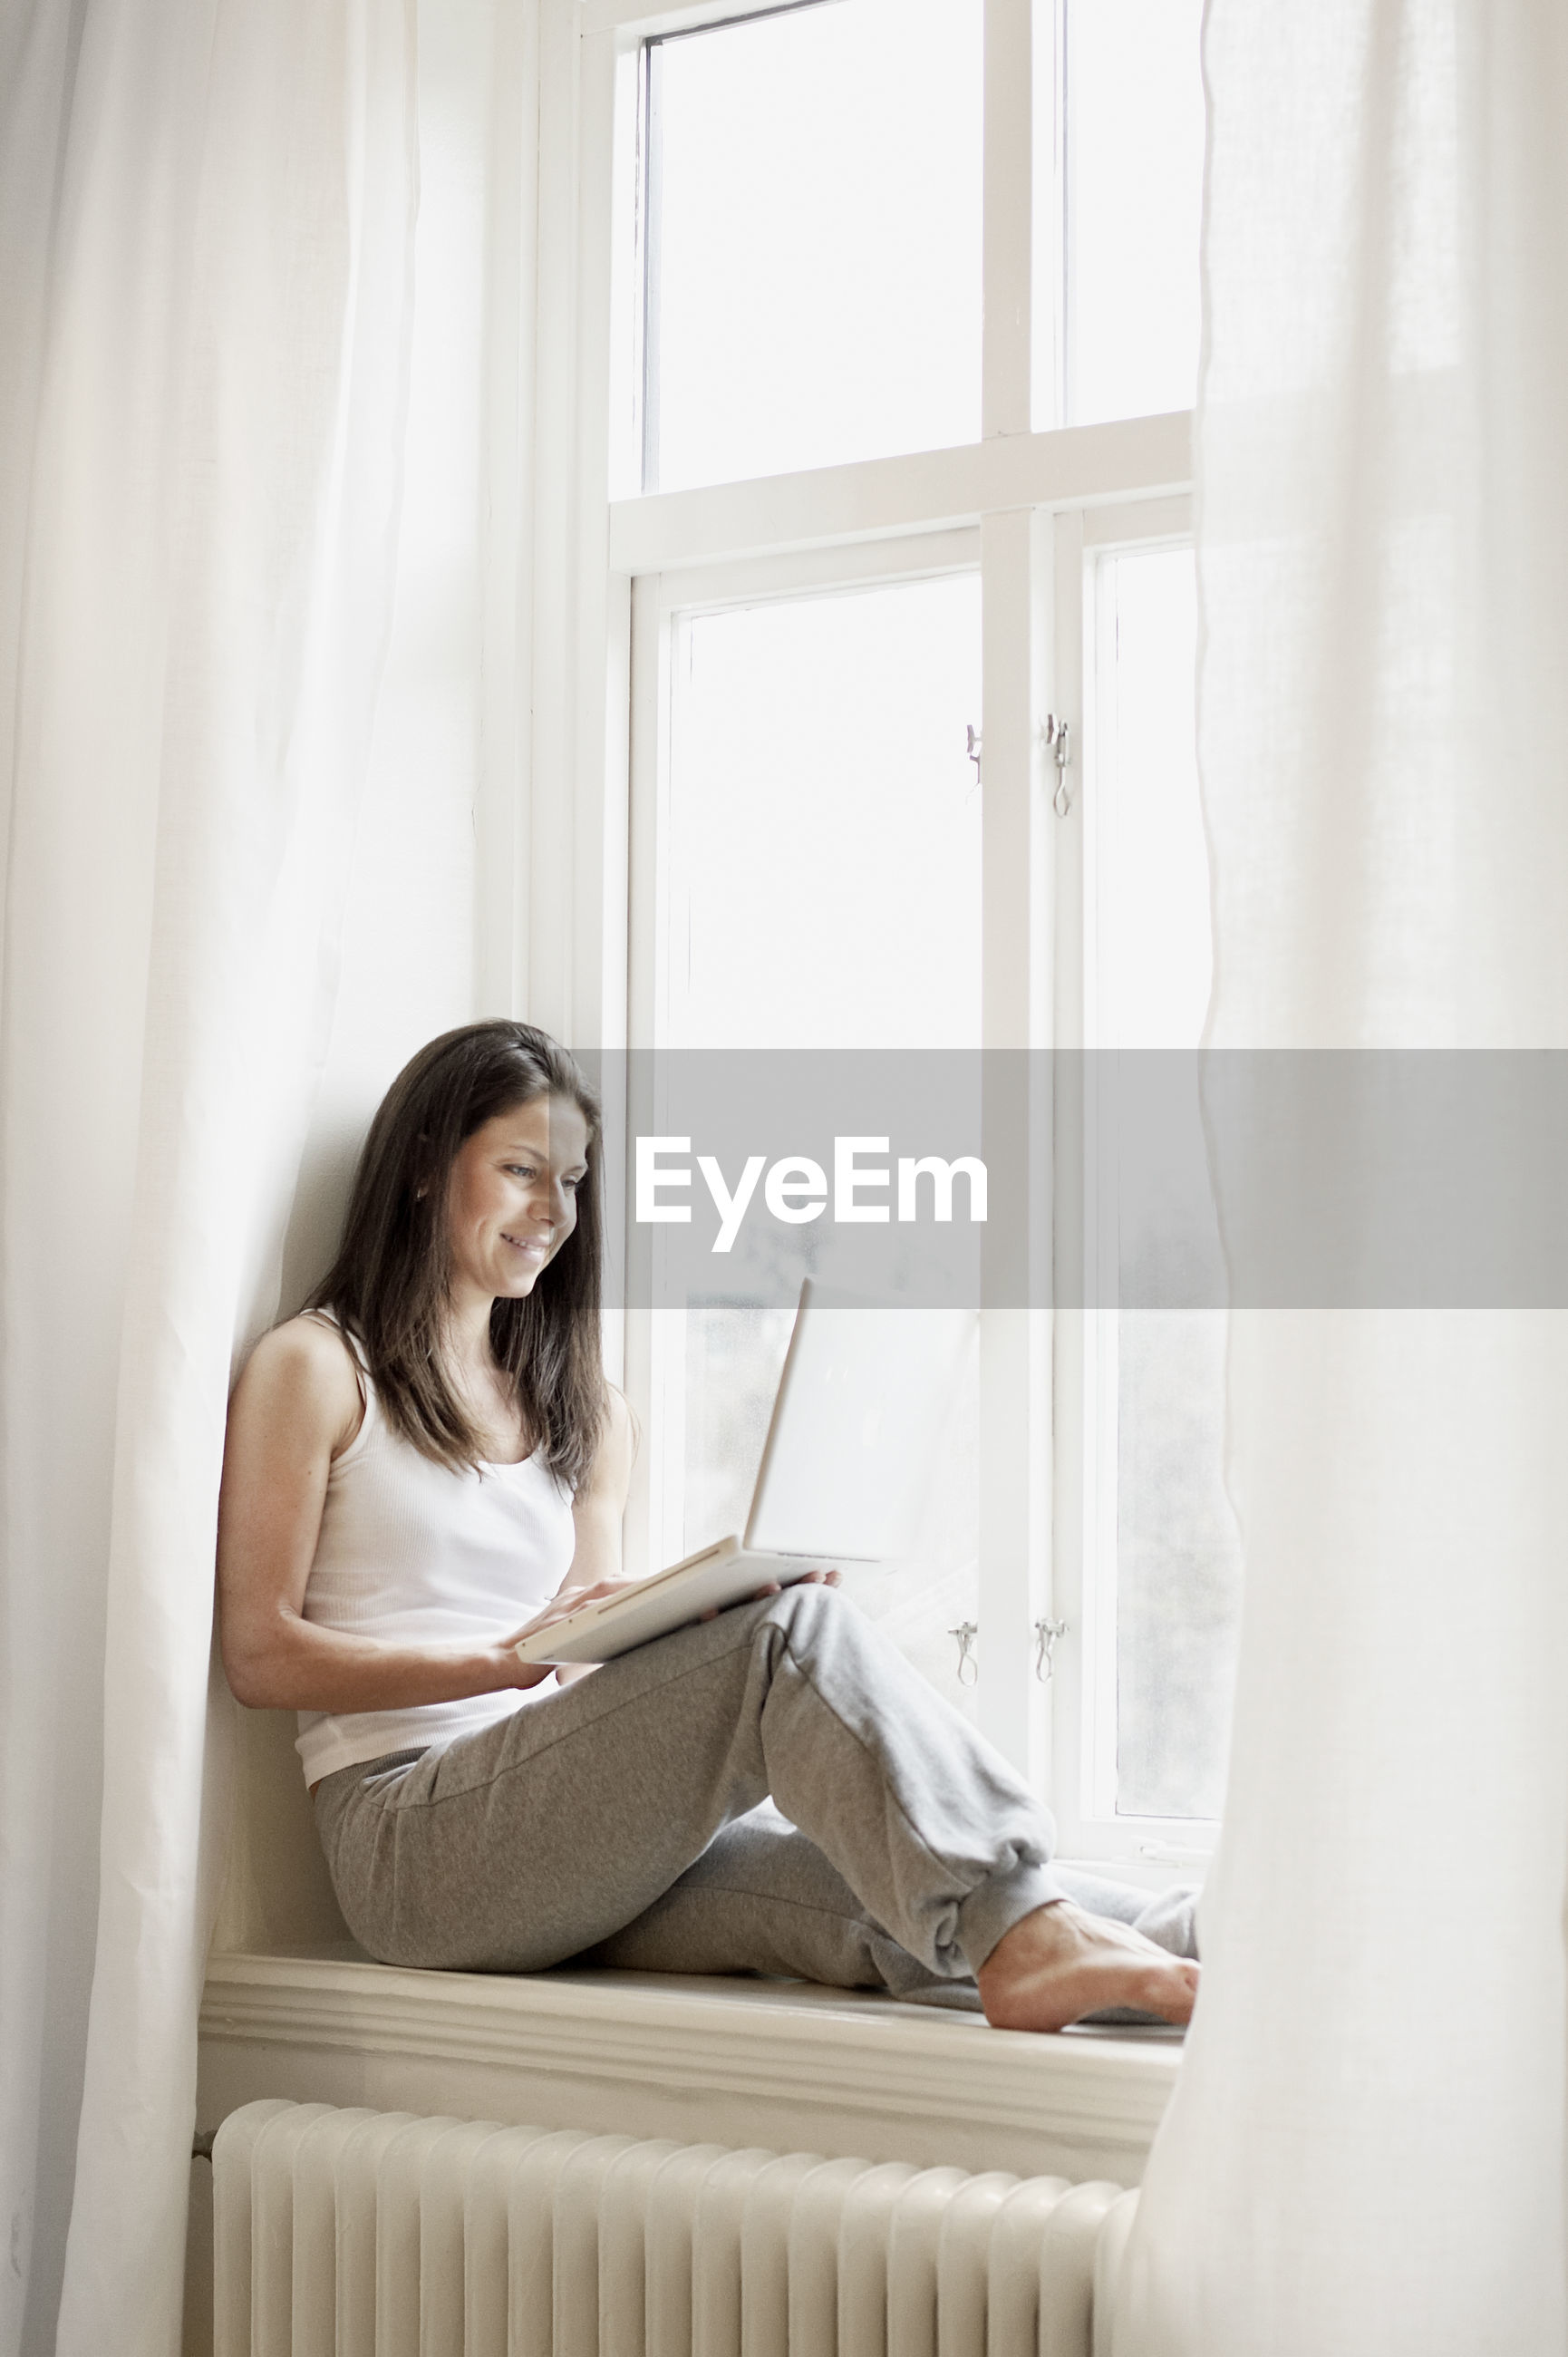 YOUNG WOMAN SITTING ON WINDOW IN HOME